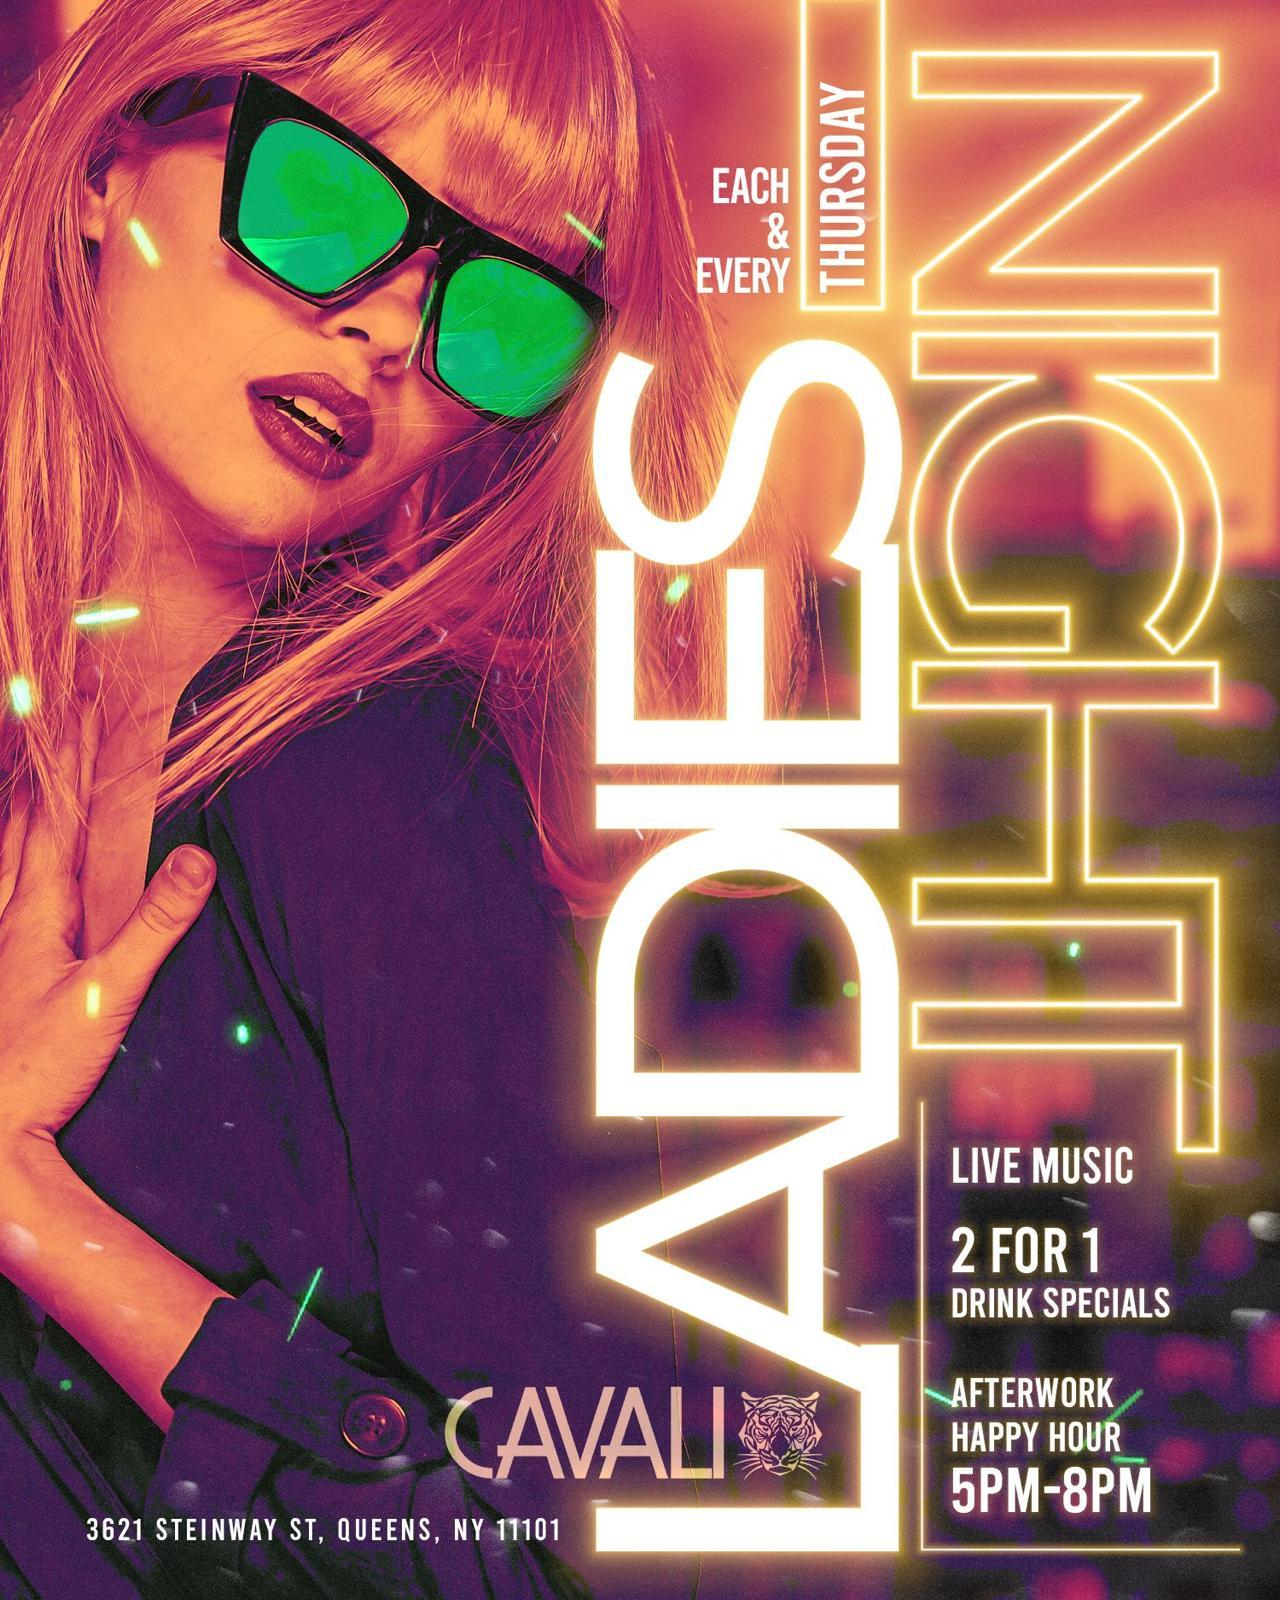 LADIES NIGHT THURSDAY  @ CAVALI NIGHTCLUB #GQEVENT